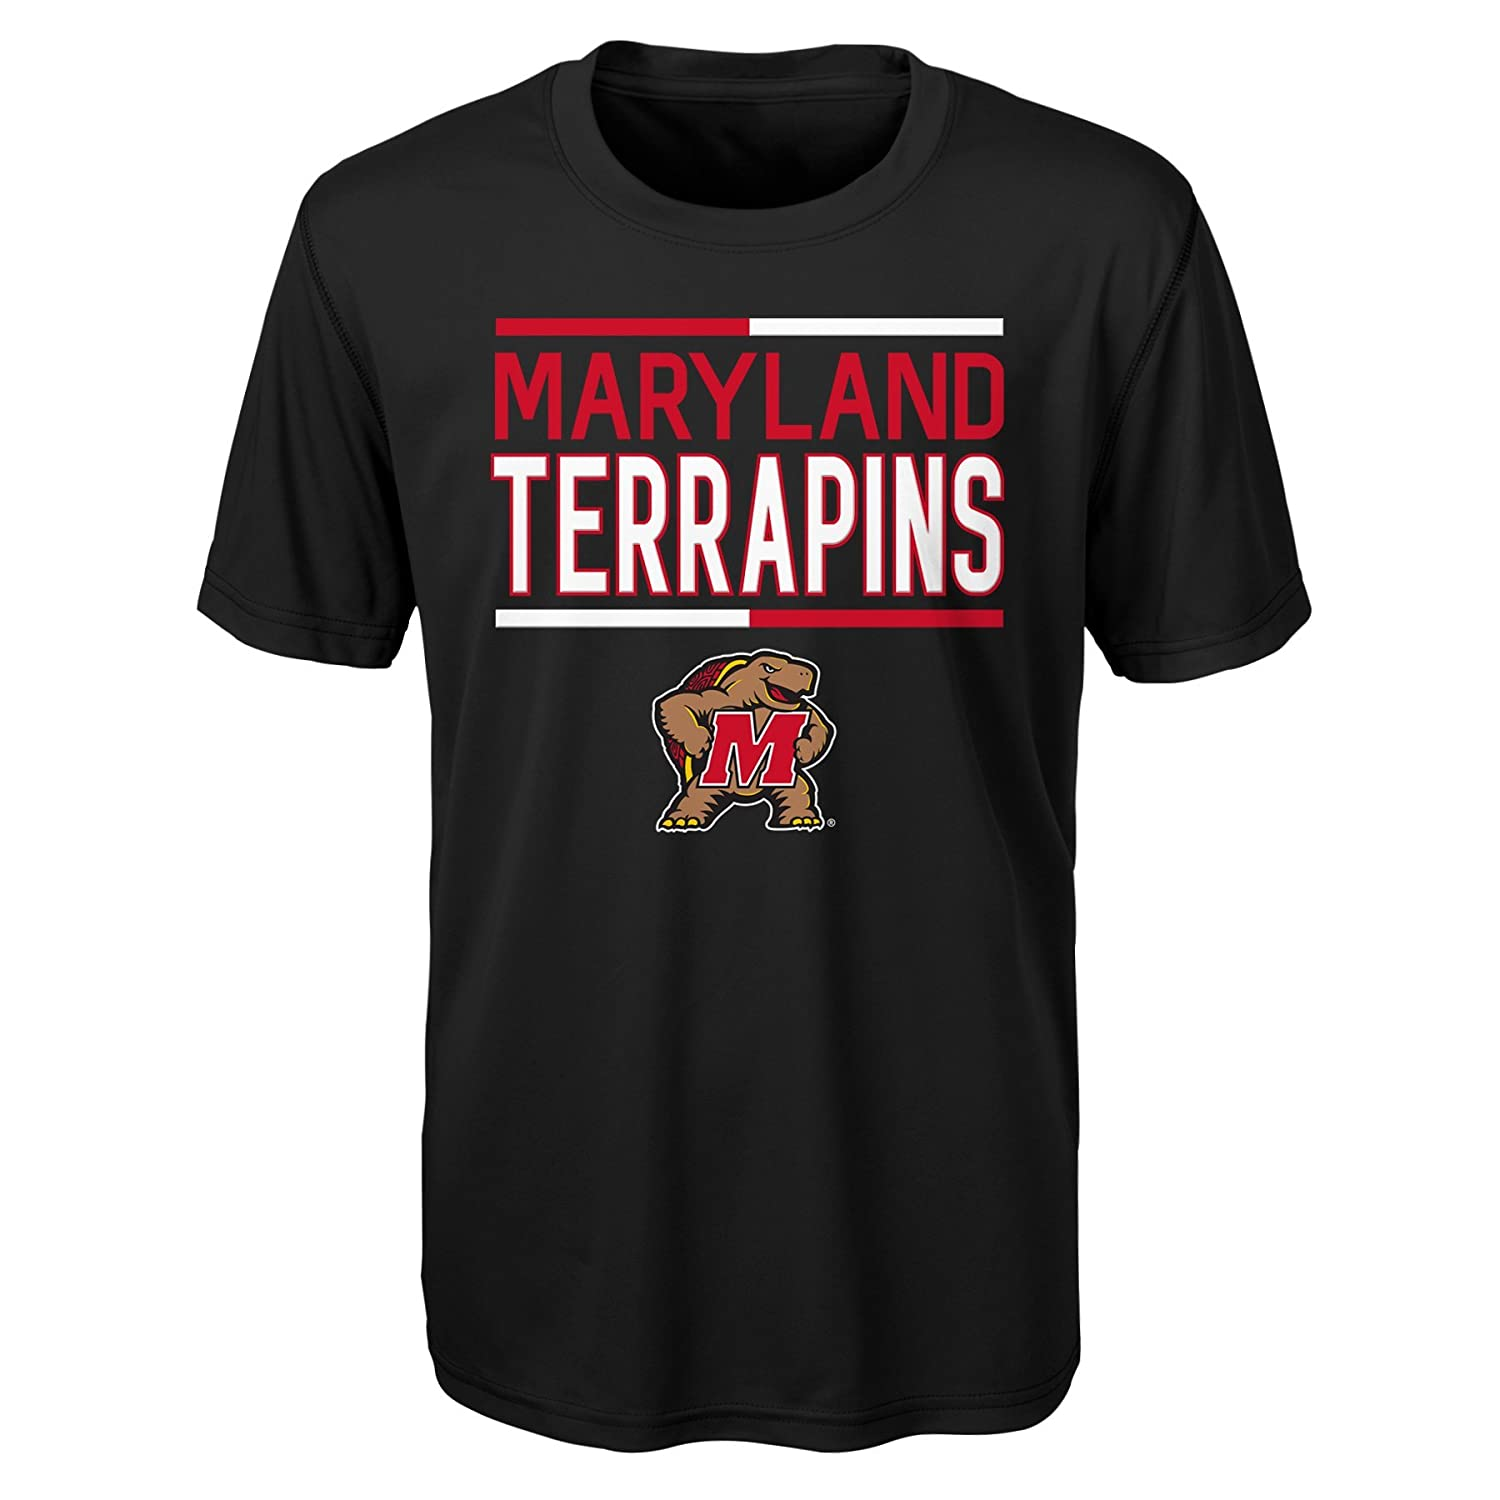 NCAA by Outerstuff NCAA Maryland Terrapins Youth Boys Flag Runner Dri-Tek Short Sleeve Alternate Color Tee Black Youth Large 14-16